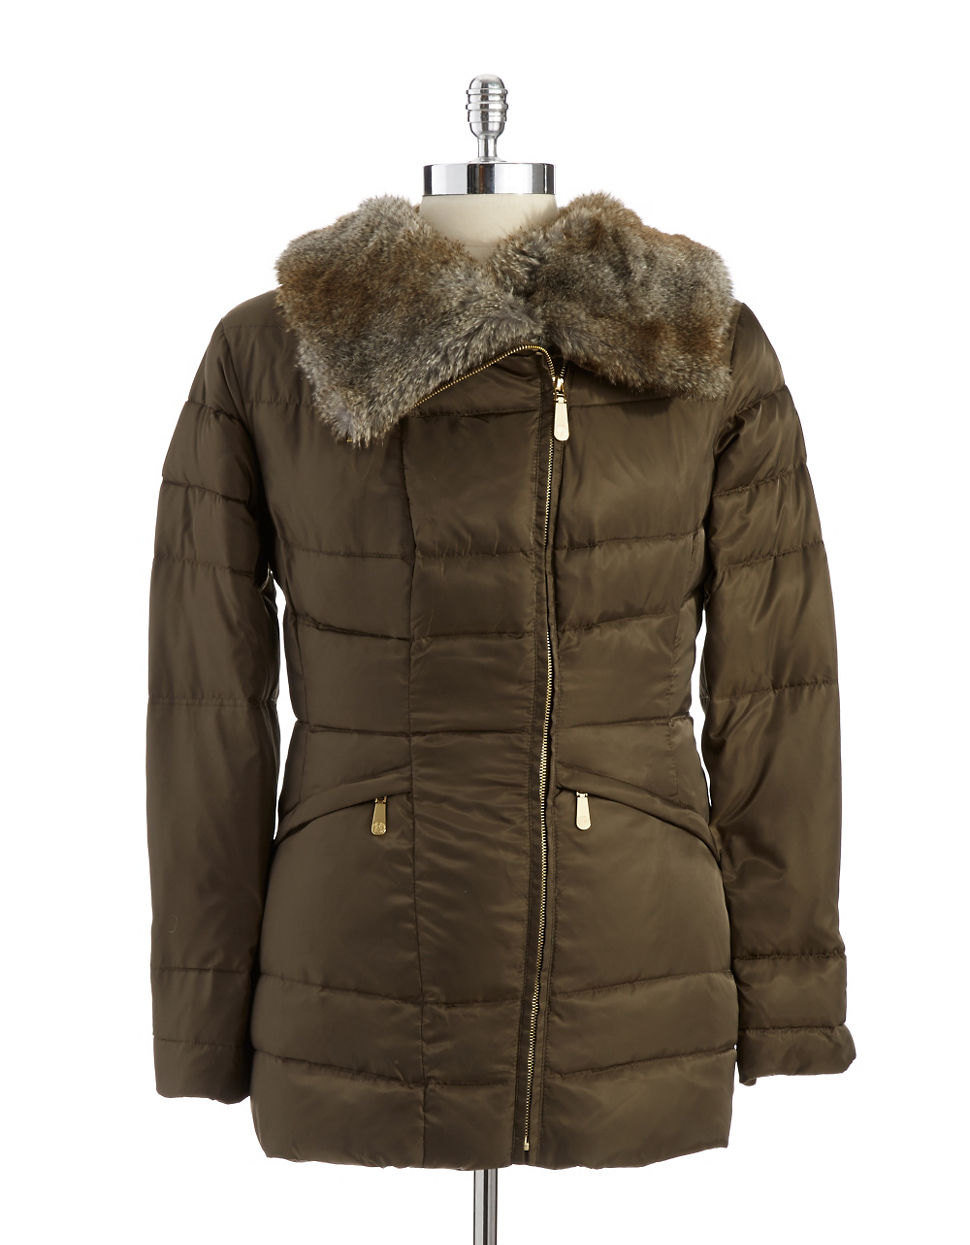 Vince Camuto Puffer Jacket With Faux Fur Collar In Green